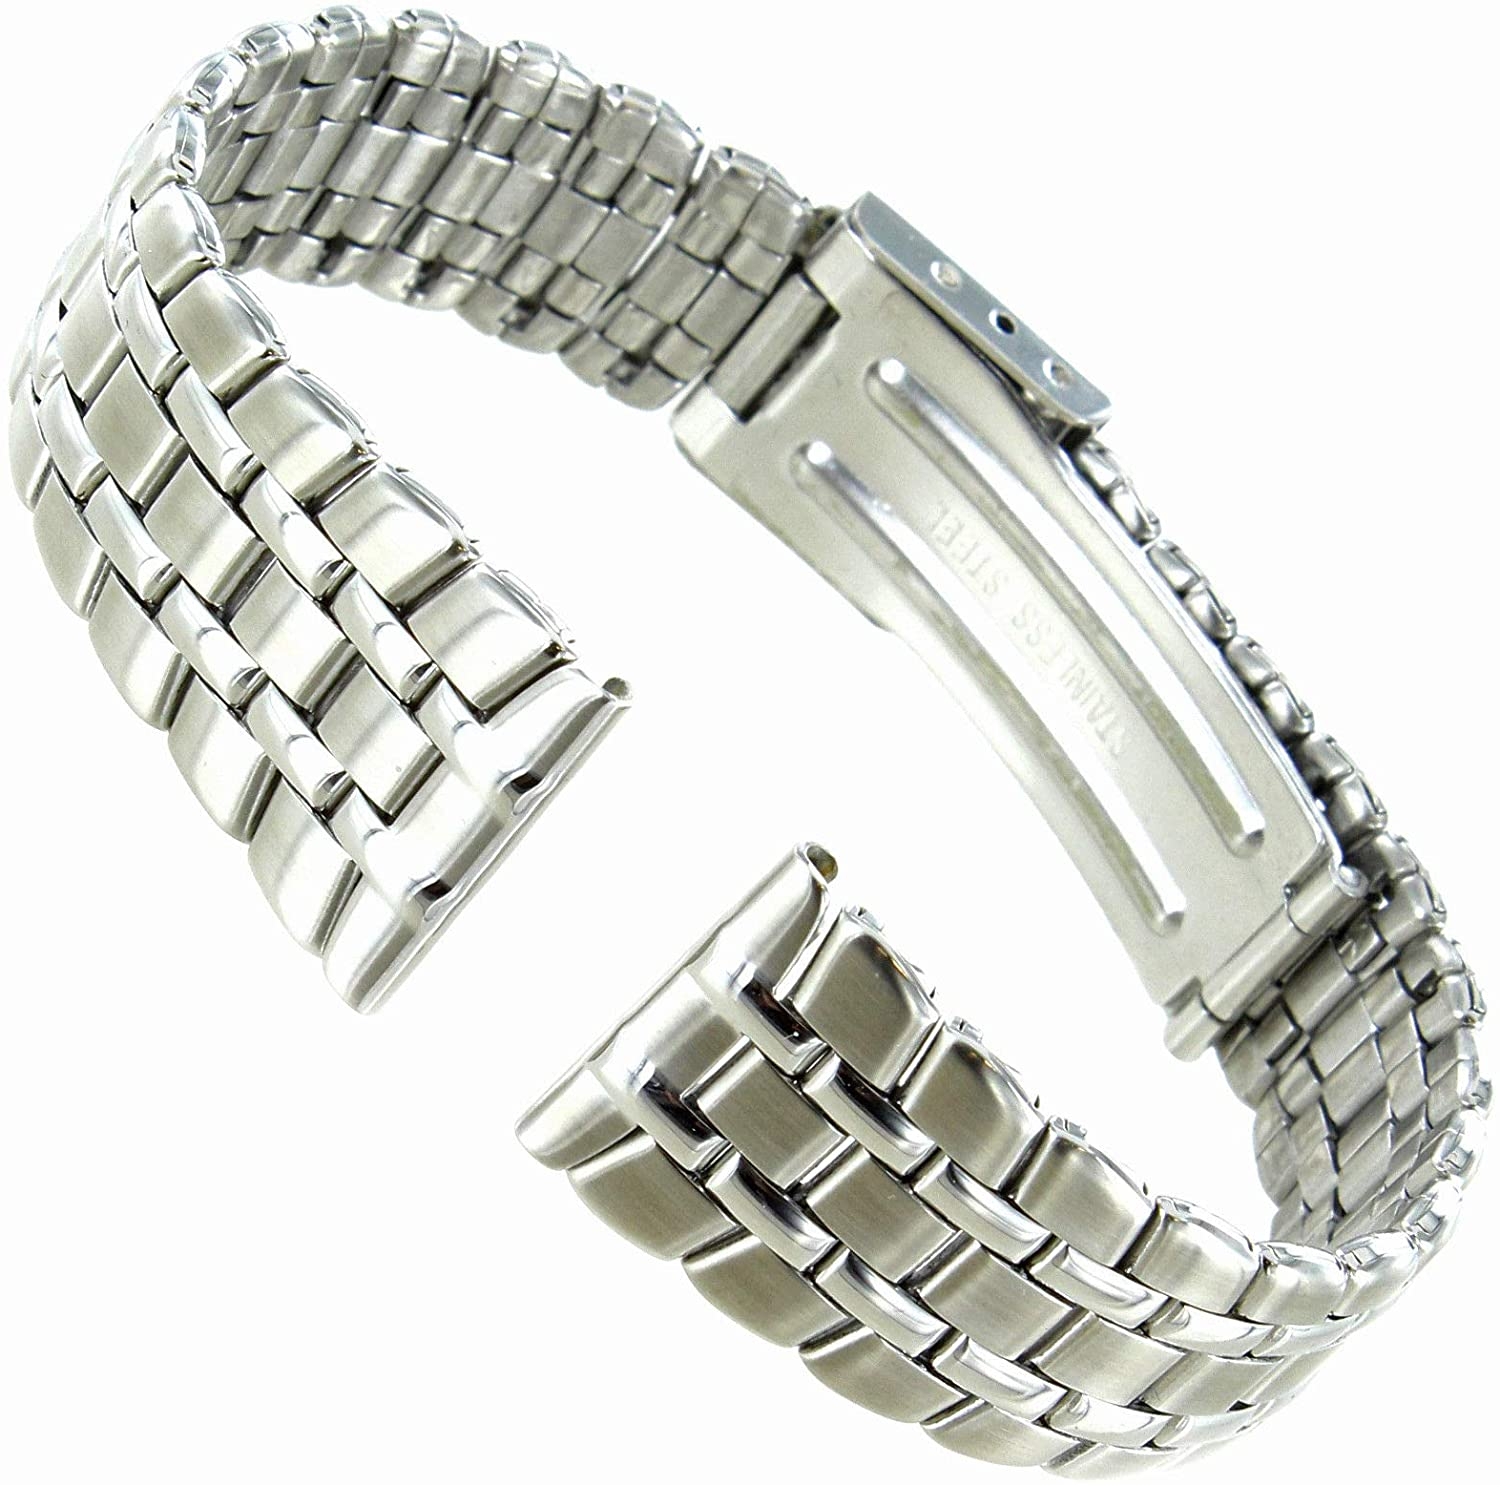 16mm Morellato Stainless Steel Silver Deployment Clasp Straight End Watch Band